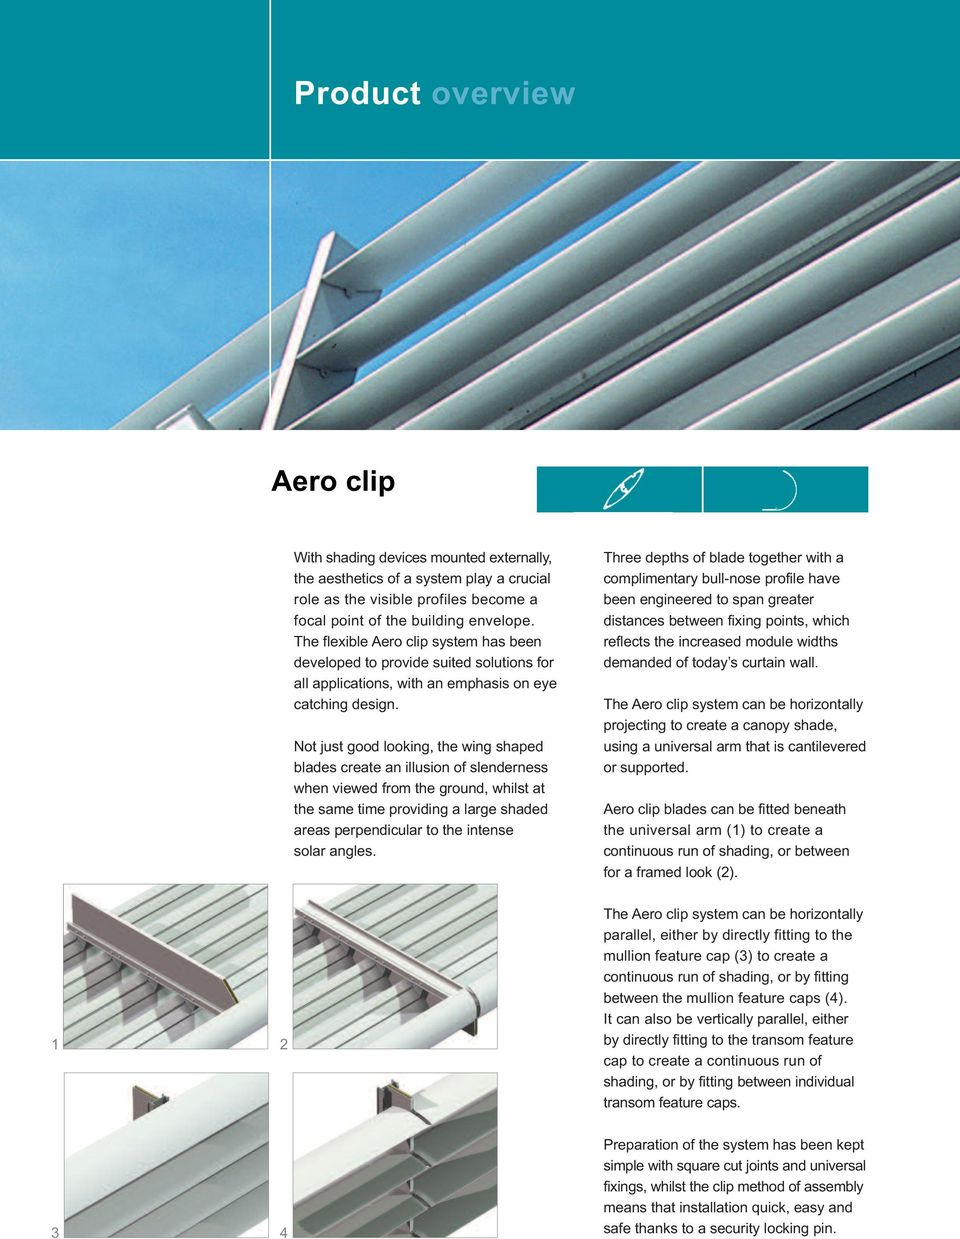 Not just good looking, the wing shaped blades create an illusion of slenderness when viewed from the ground, whilst at the same time providing a large shaded areas perpendicular to the intense solar